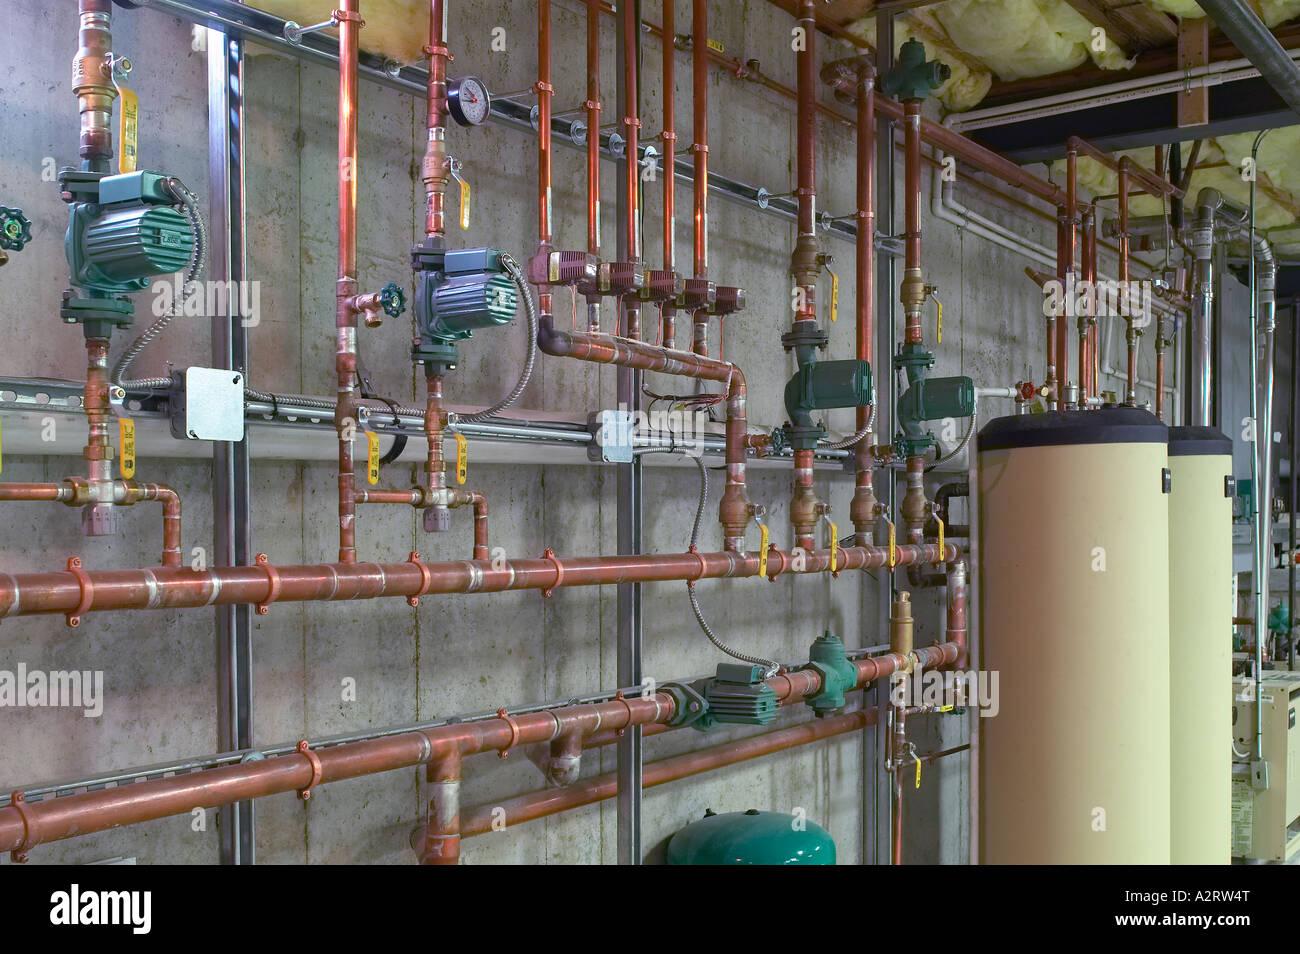 Metal Copper Water Pipes With Hot Water Heaters In Basement - Stock Image